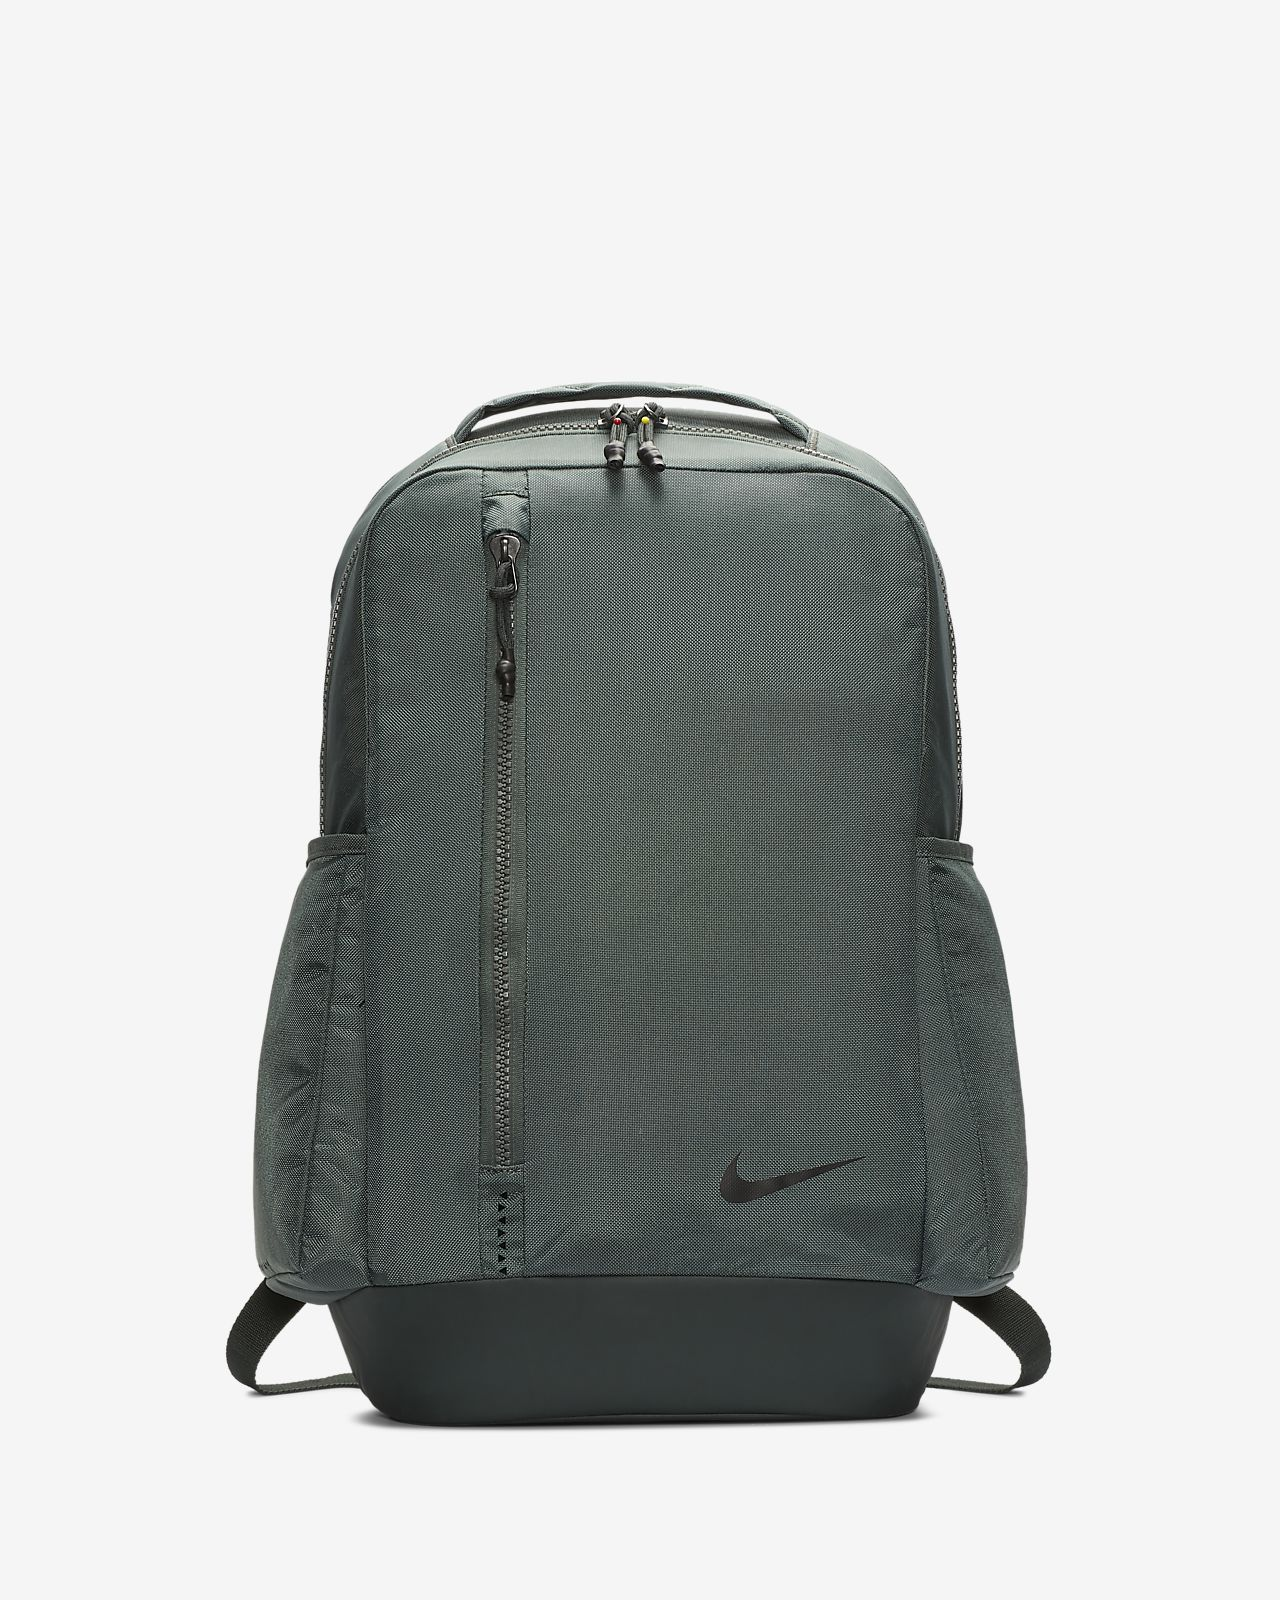 8c38881844d47 Nike Vapor Power 2.0 Training Backpack. Nike.com